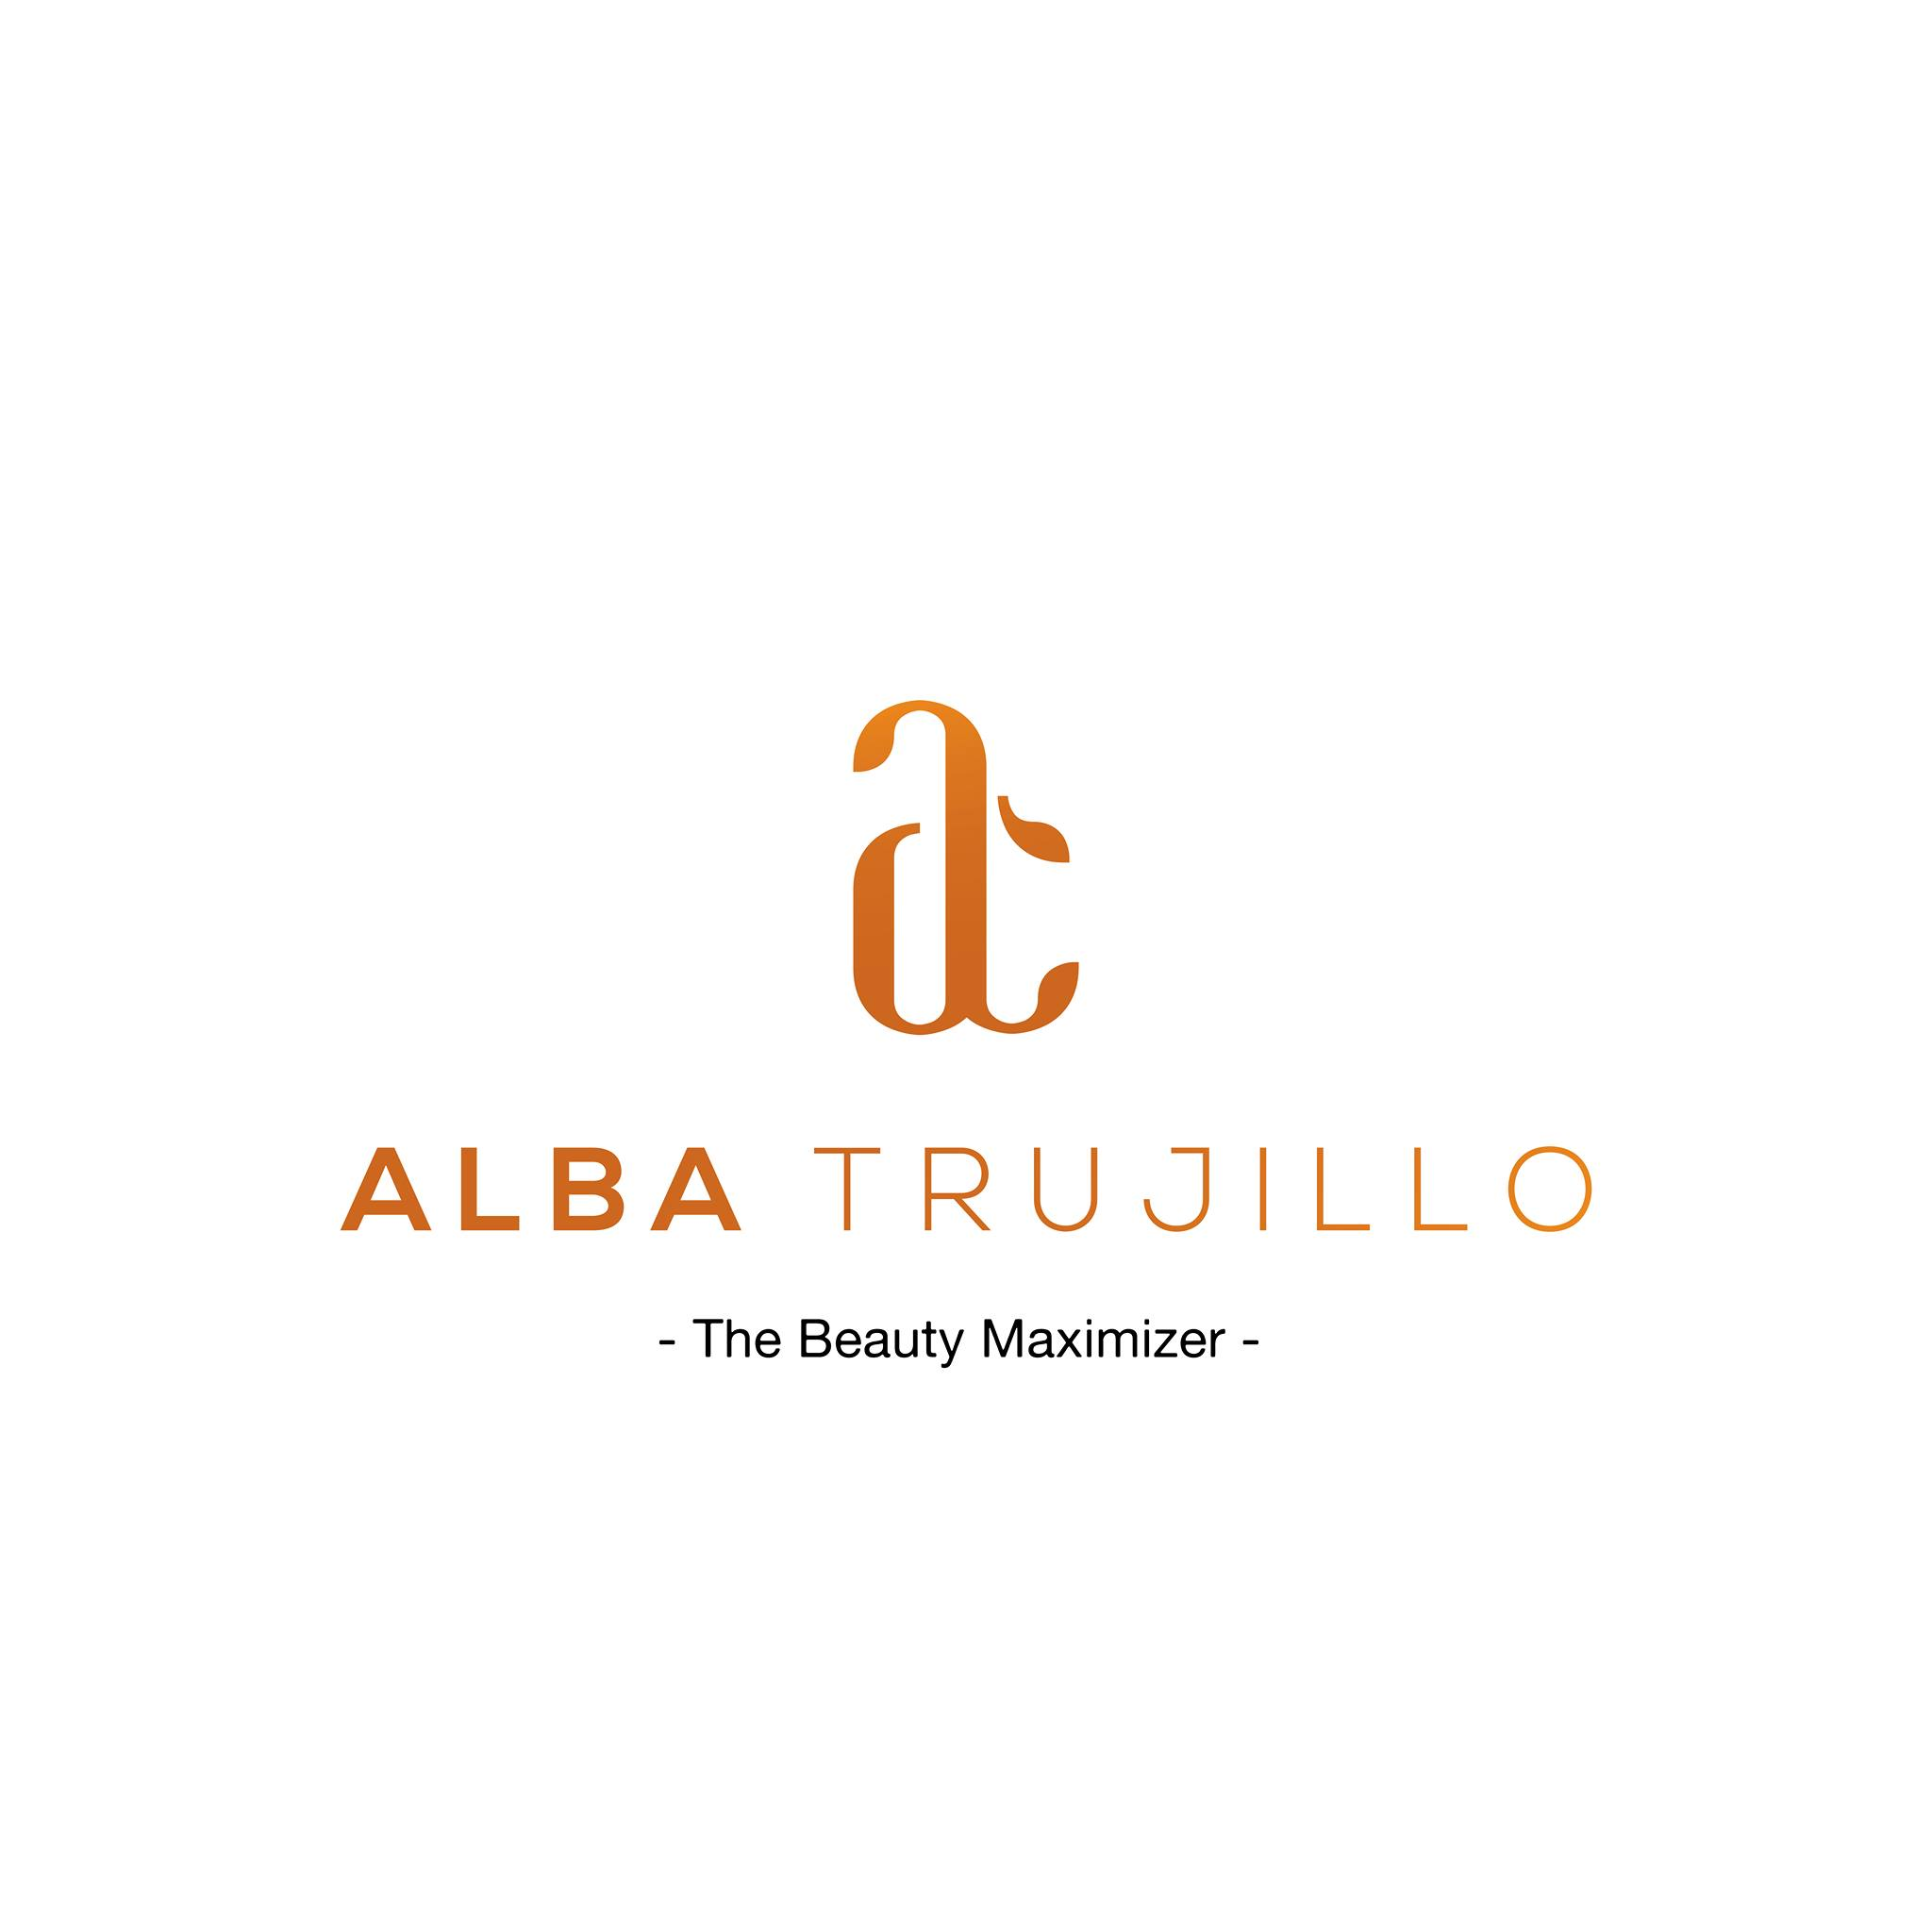 alba-trujillo-the-beauty-maximazir-rockinchiclifestyle